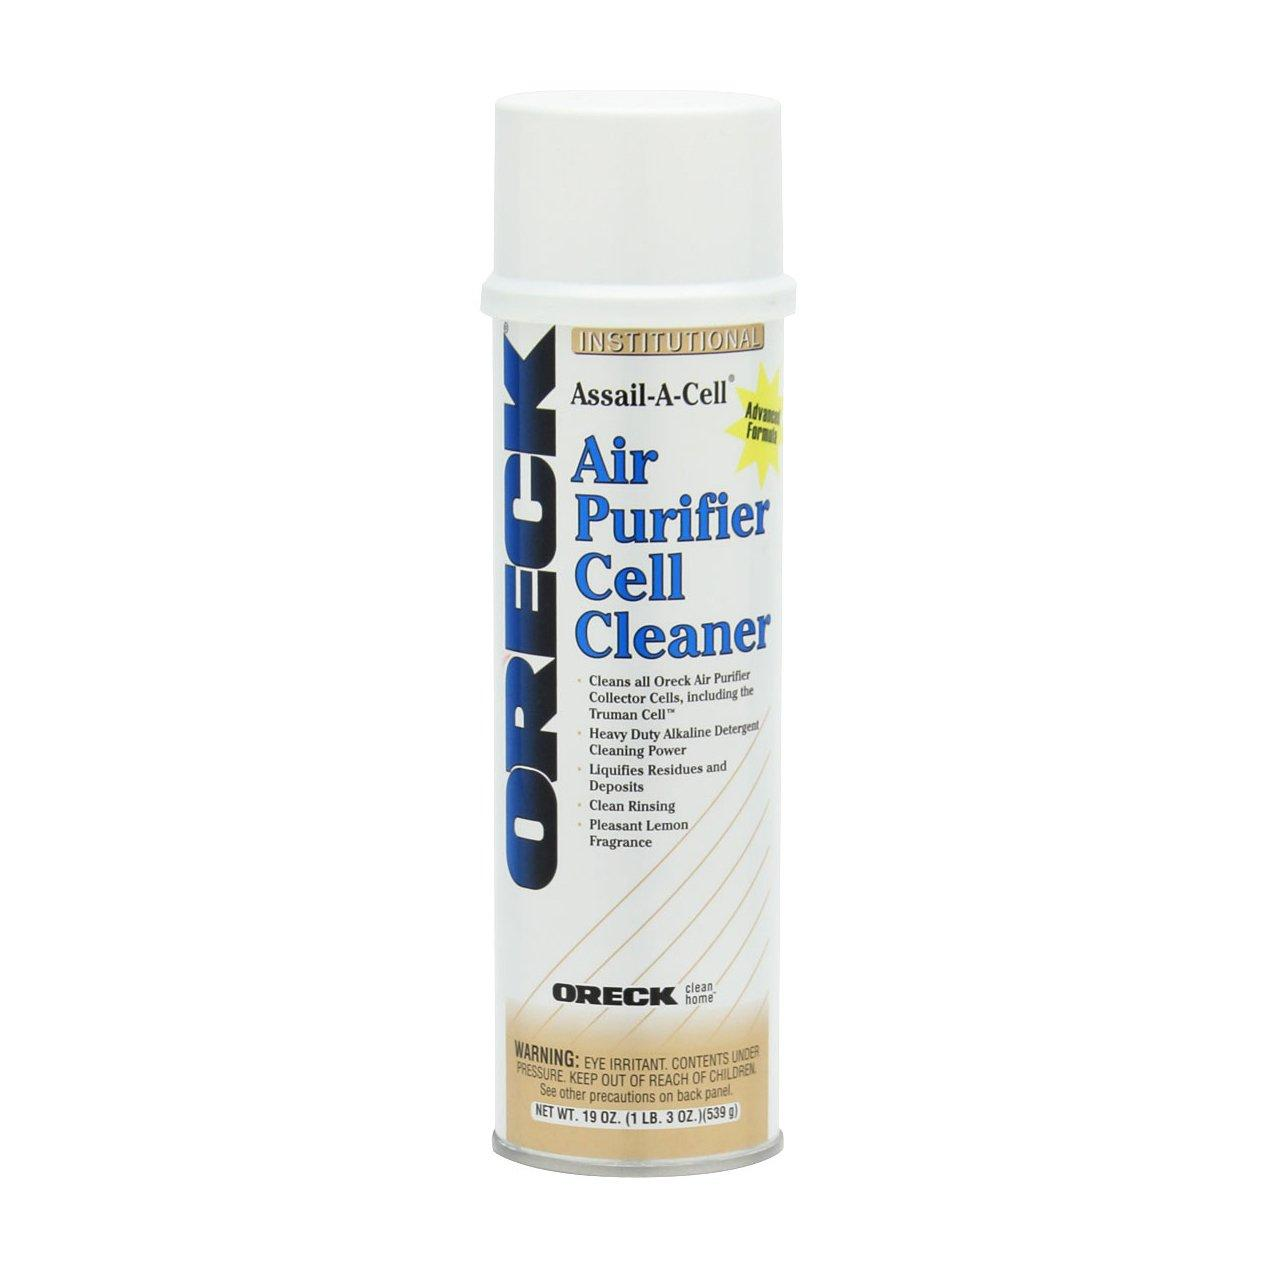 Assail-A-Cell Air Purifier Cleaner1